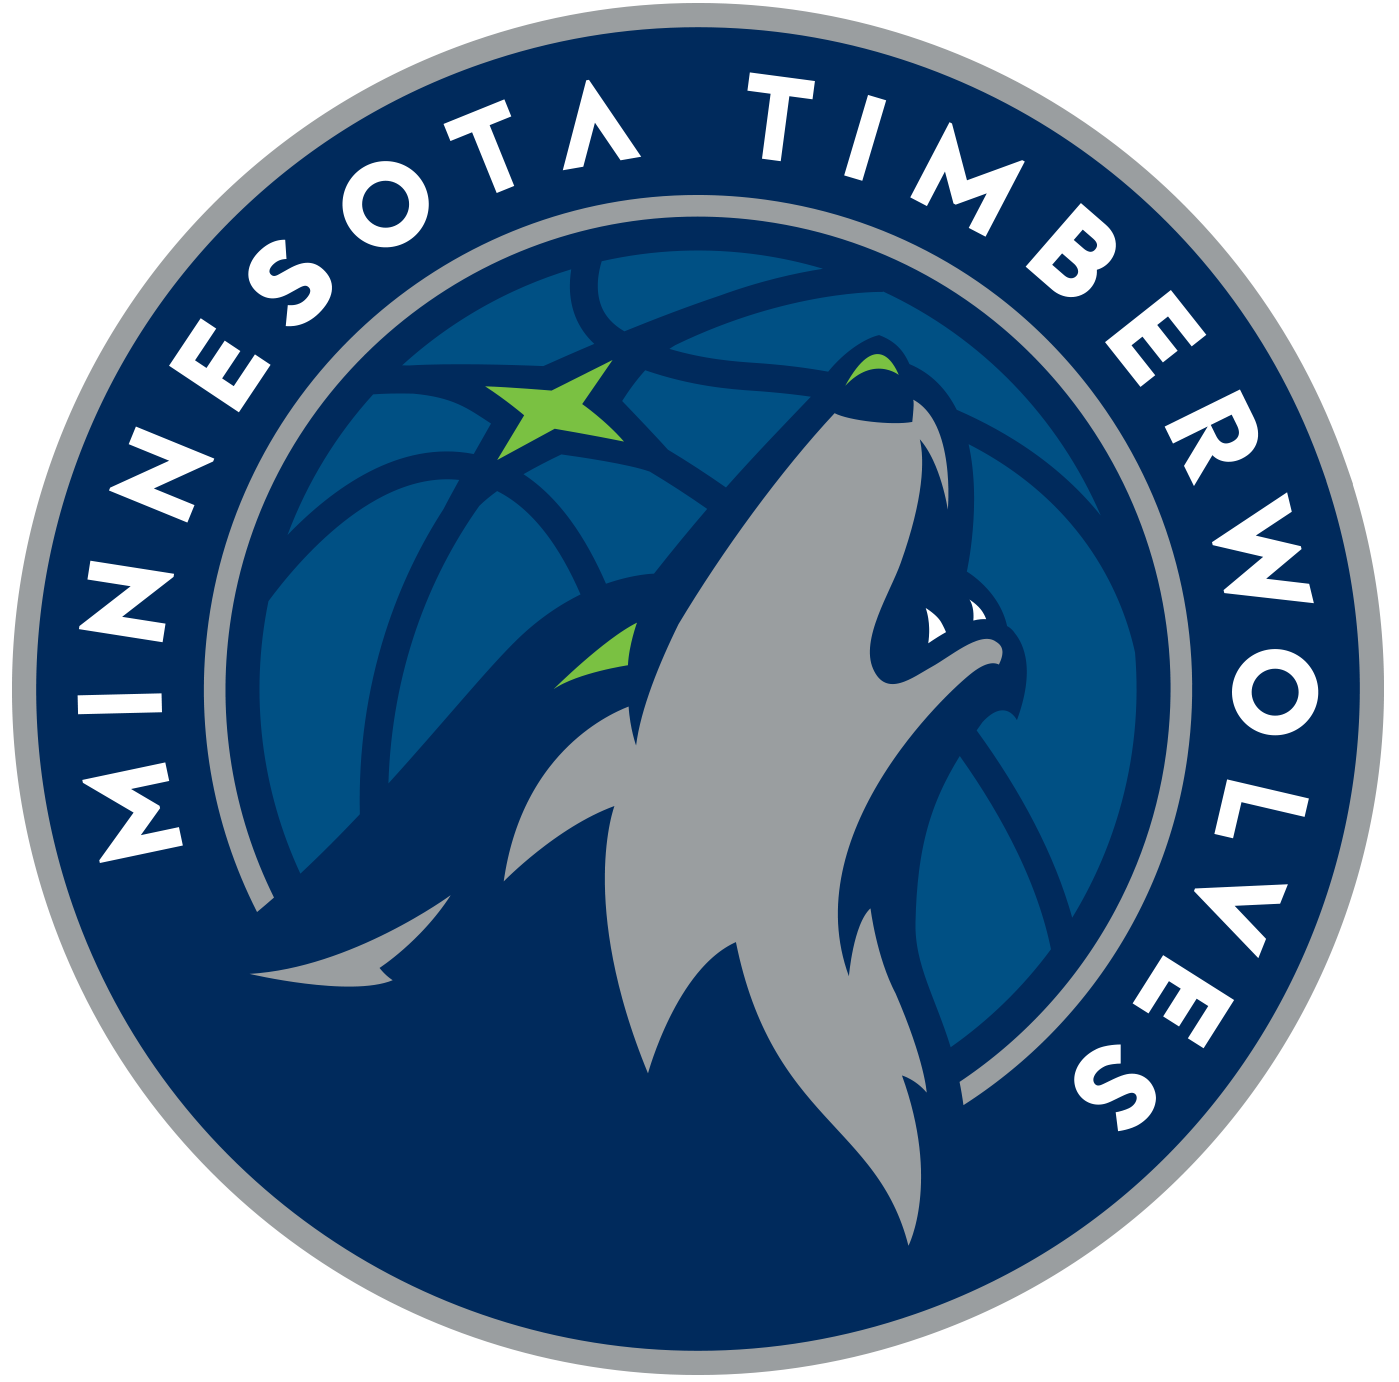 an introduction to the minnesota timberwolves basketball team The minnesota timberwolves are an american professional basketball team based in minneapolis, minnesota the timberwolves compete in the national basketball.